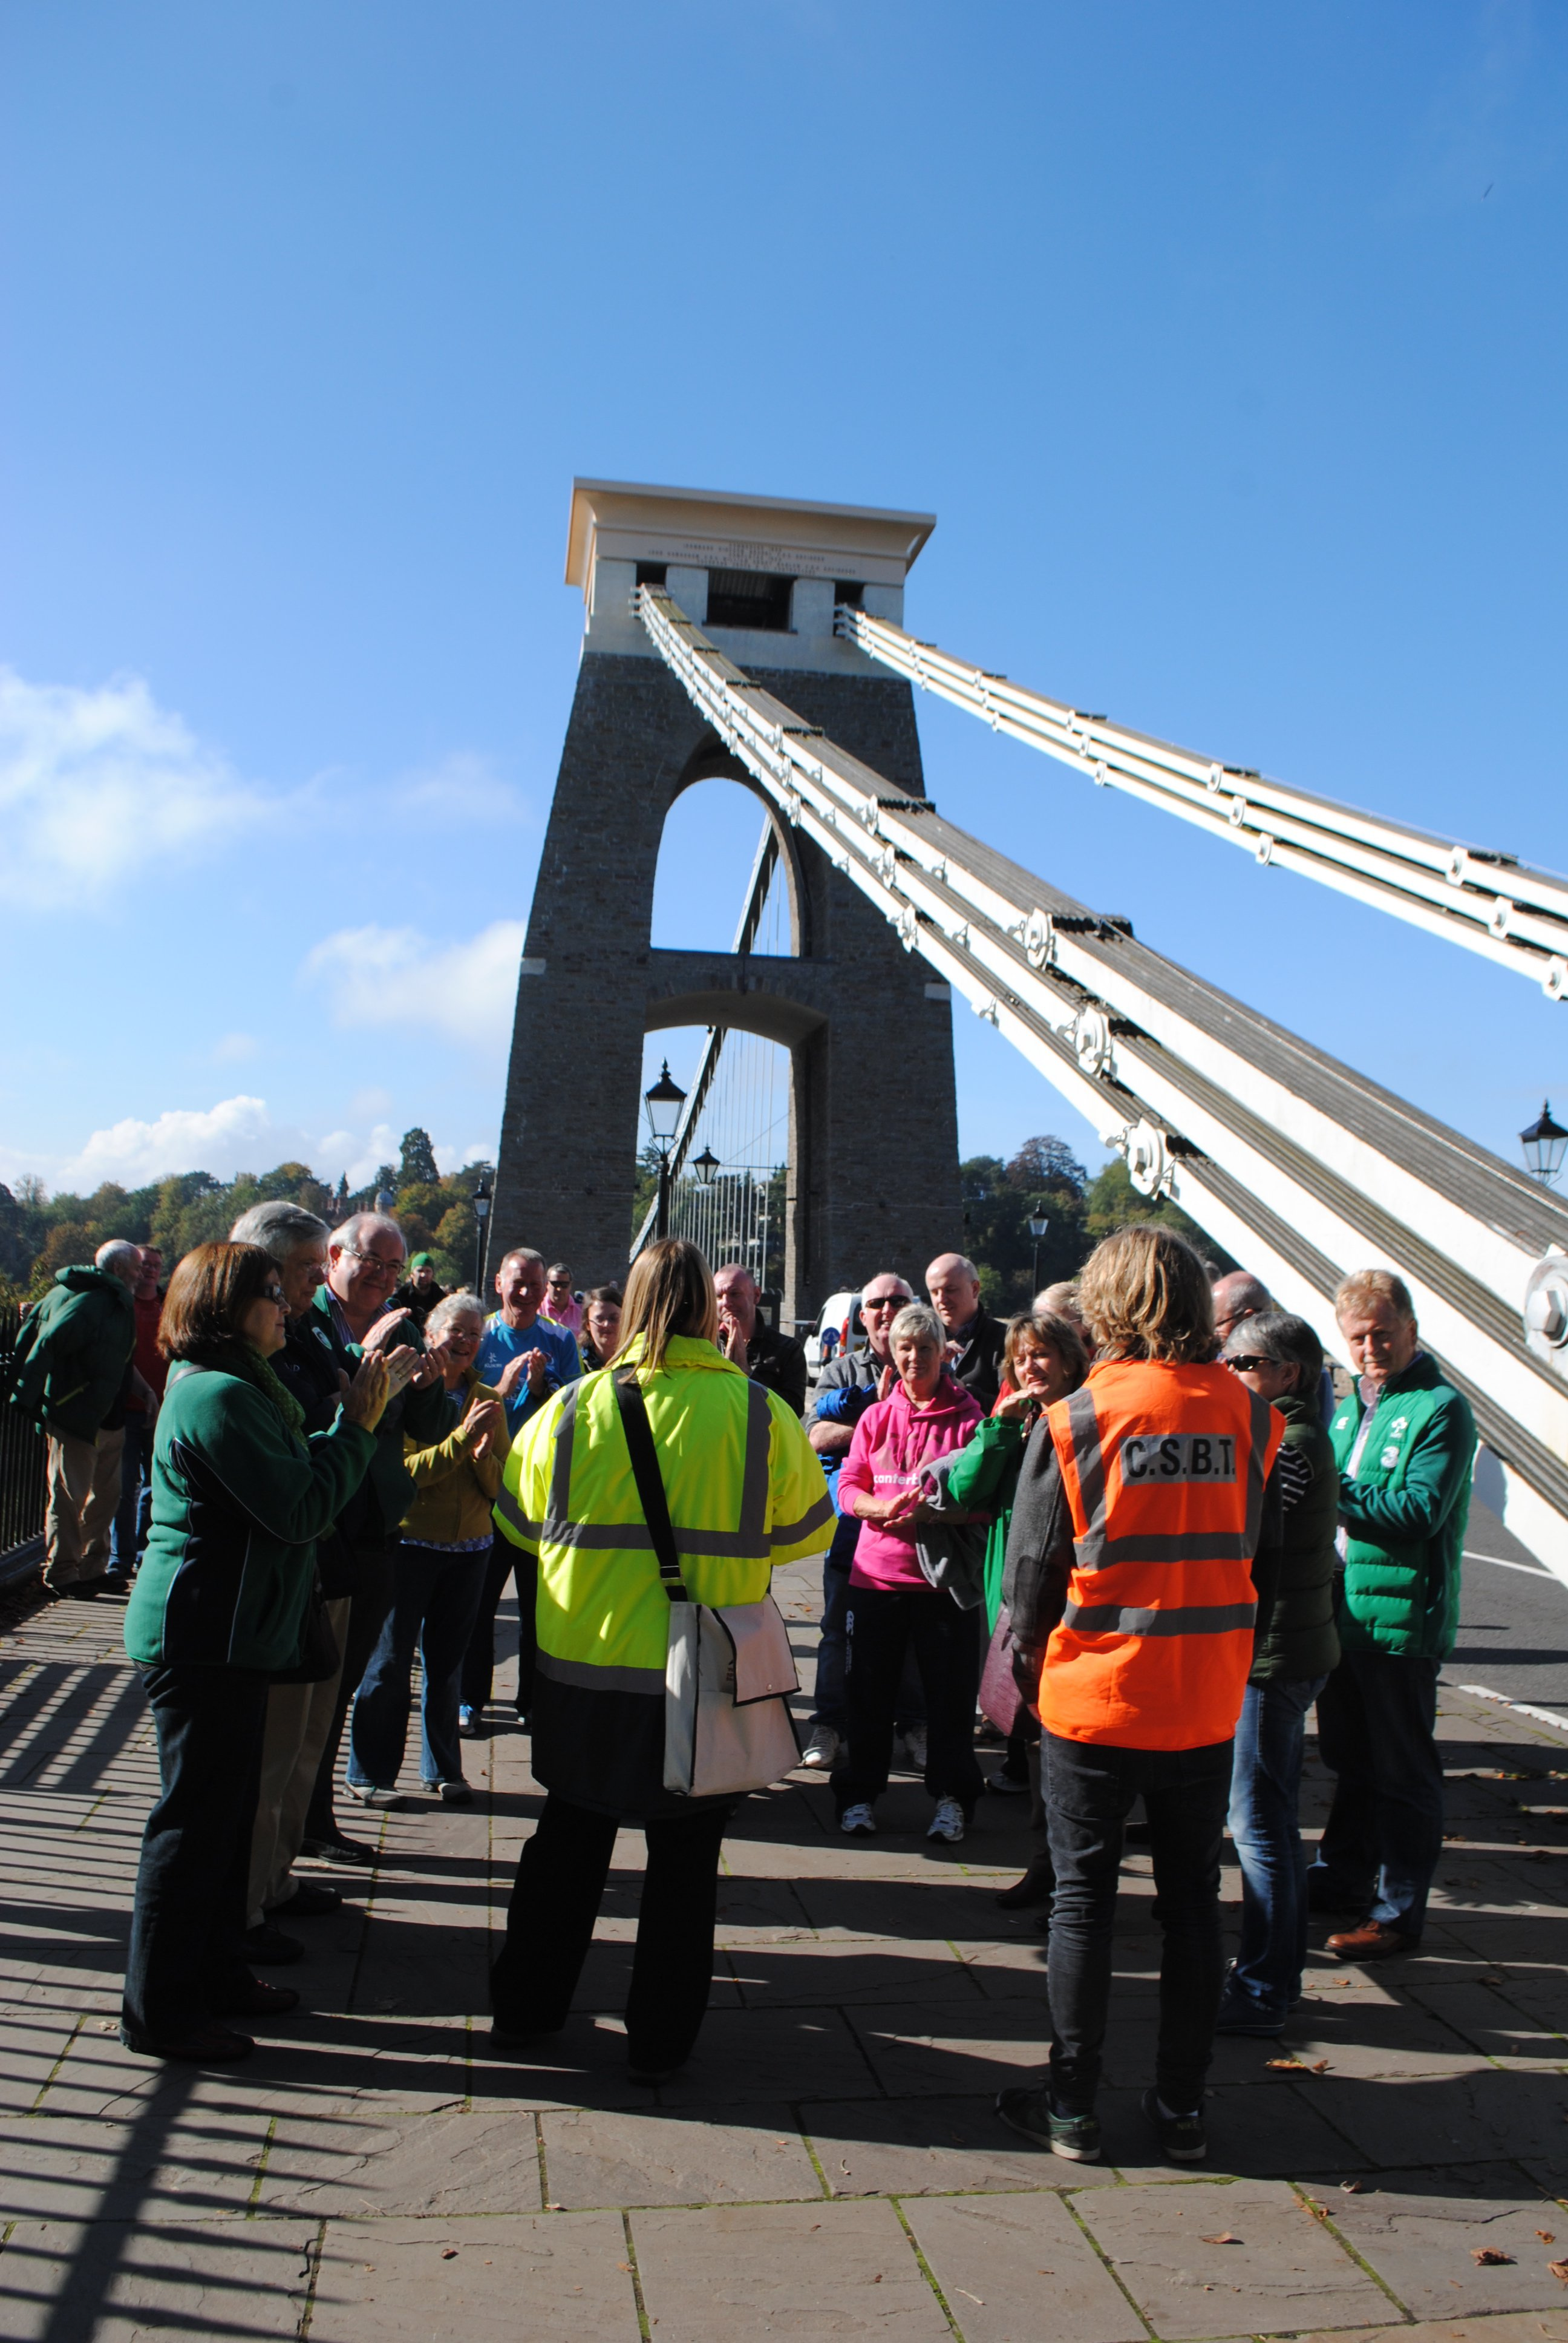 Free tours of the bridge take place at 3pm every Saturday, Sunday and Bank Holiday between Easter and October. Look out for a guide in an orange high-vis jacket waiting at the Clifton Tower. Tours for schools and groups can be booked at any time for a fee of £3.50 per head.